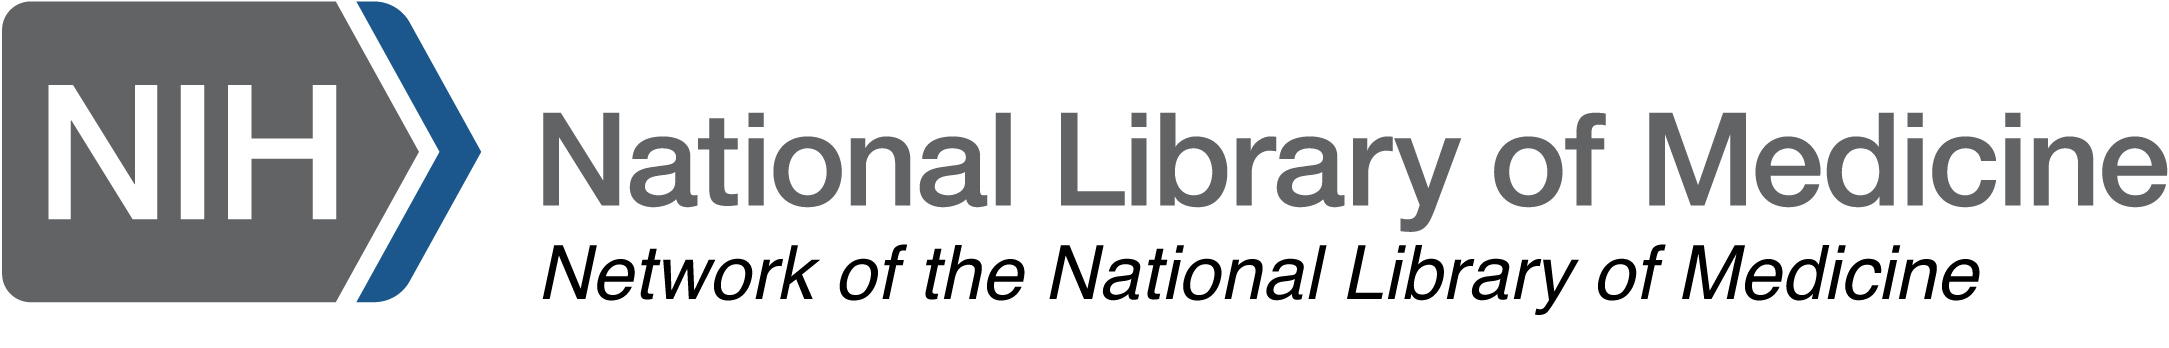 National Library of Medicine. Network of of the National Library of Medicine